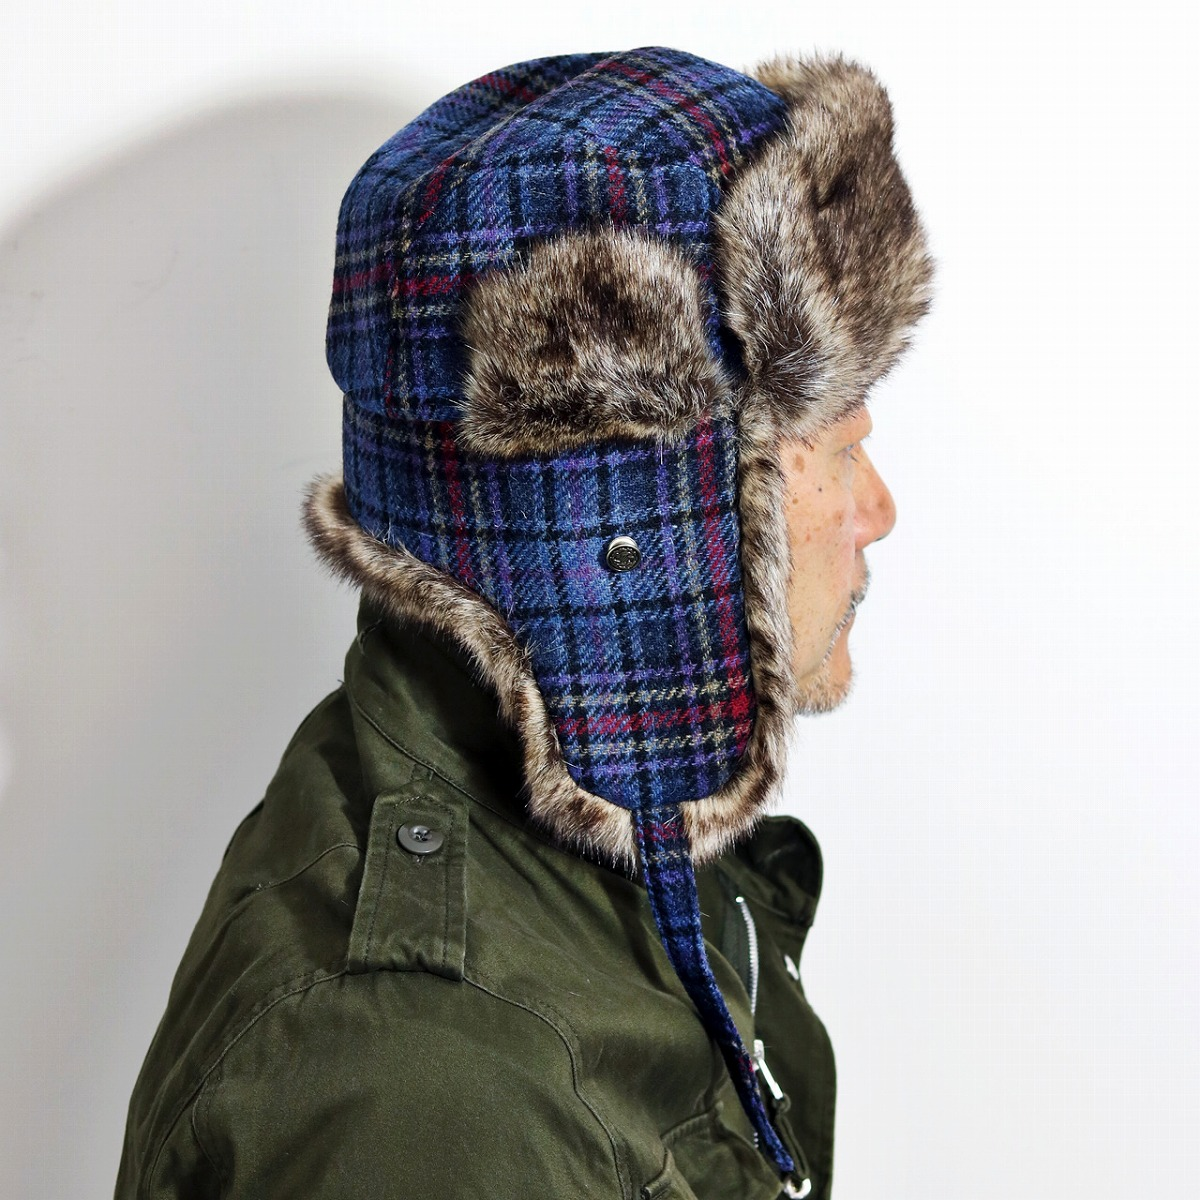 Flight cap flight hat cold protection earflap ear cover KASZKIET nostalgic men  hat cap checked pattern カシュケットギフト blue blue (Christmas gift packing ... 0e1a5560772d